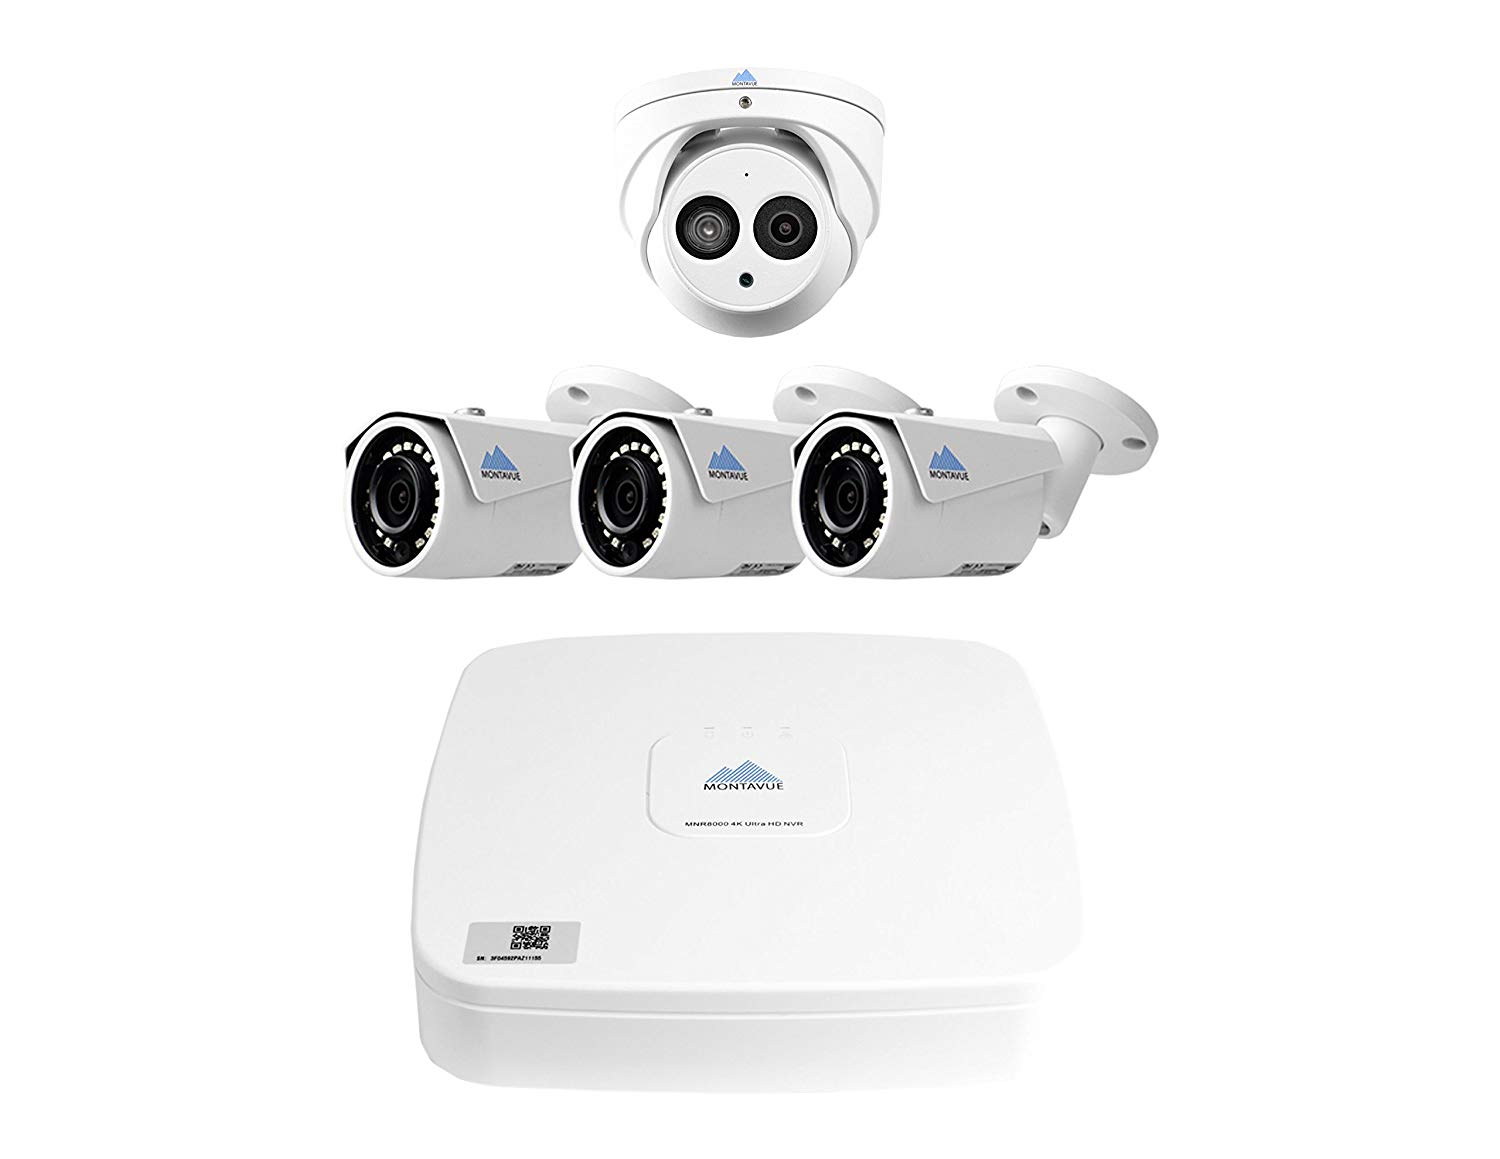 Montavue Surveillance System 4 Channel NVR w/ 4 4MP IP Security Cameras 3 Bullets 1 Turret with Audio, Color Night Optics, IR Night Vision & metal housing – MTIP80413B1T